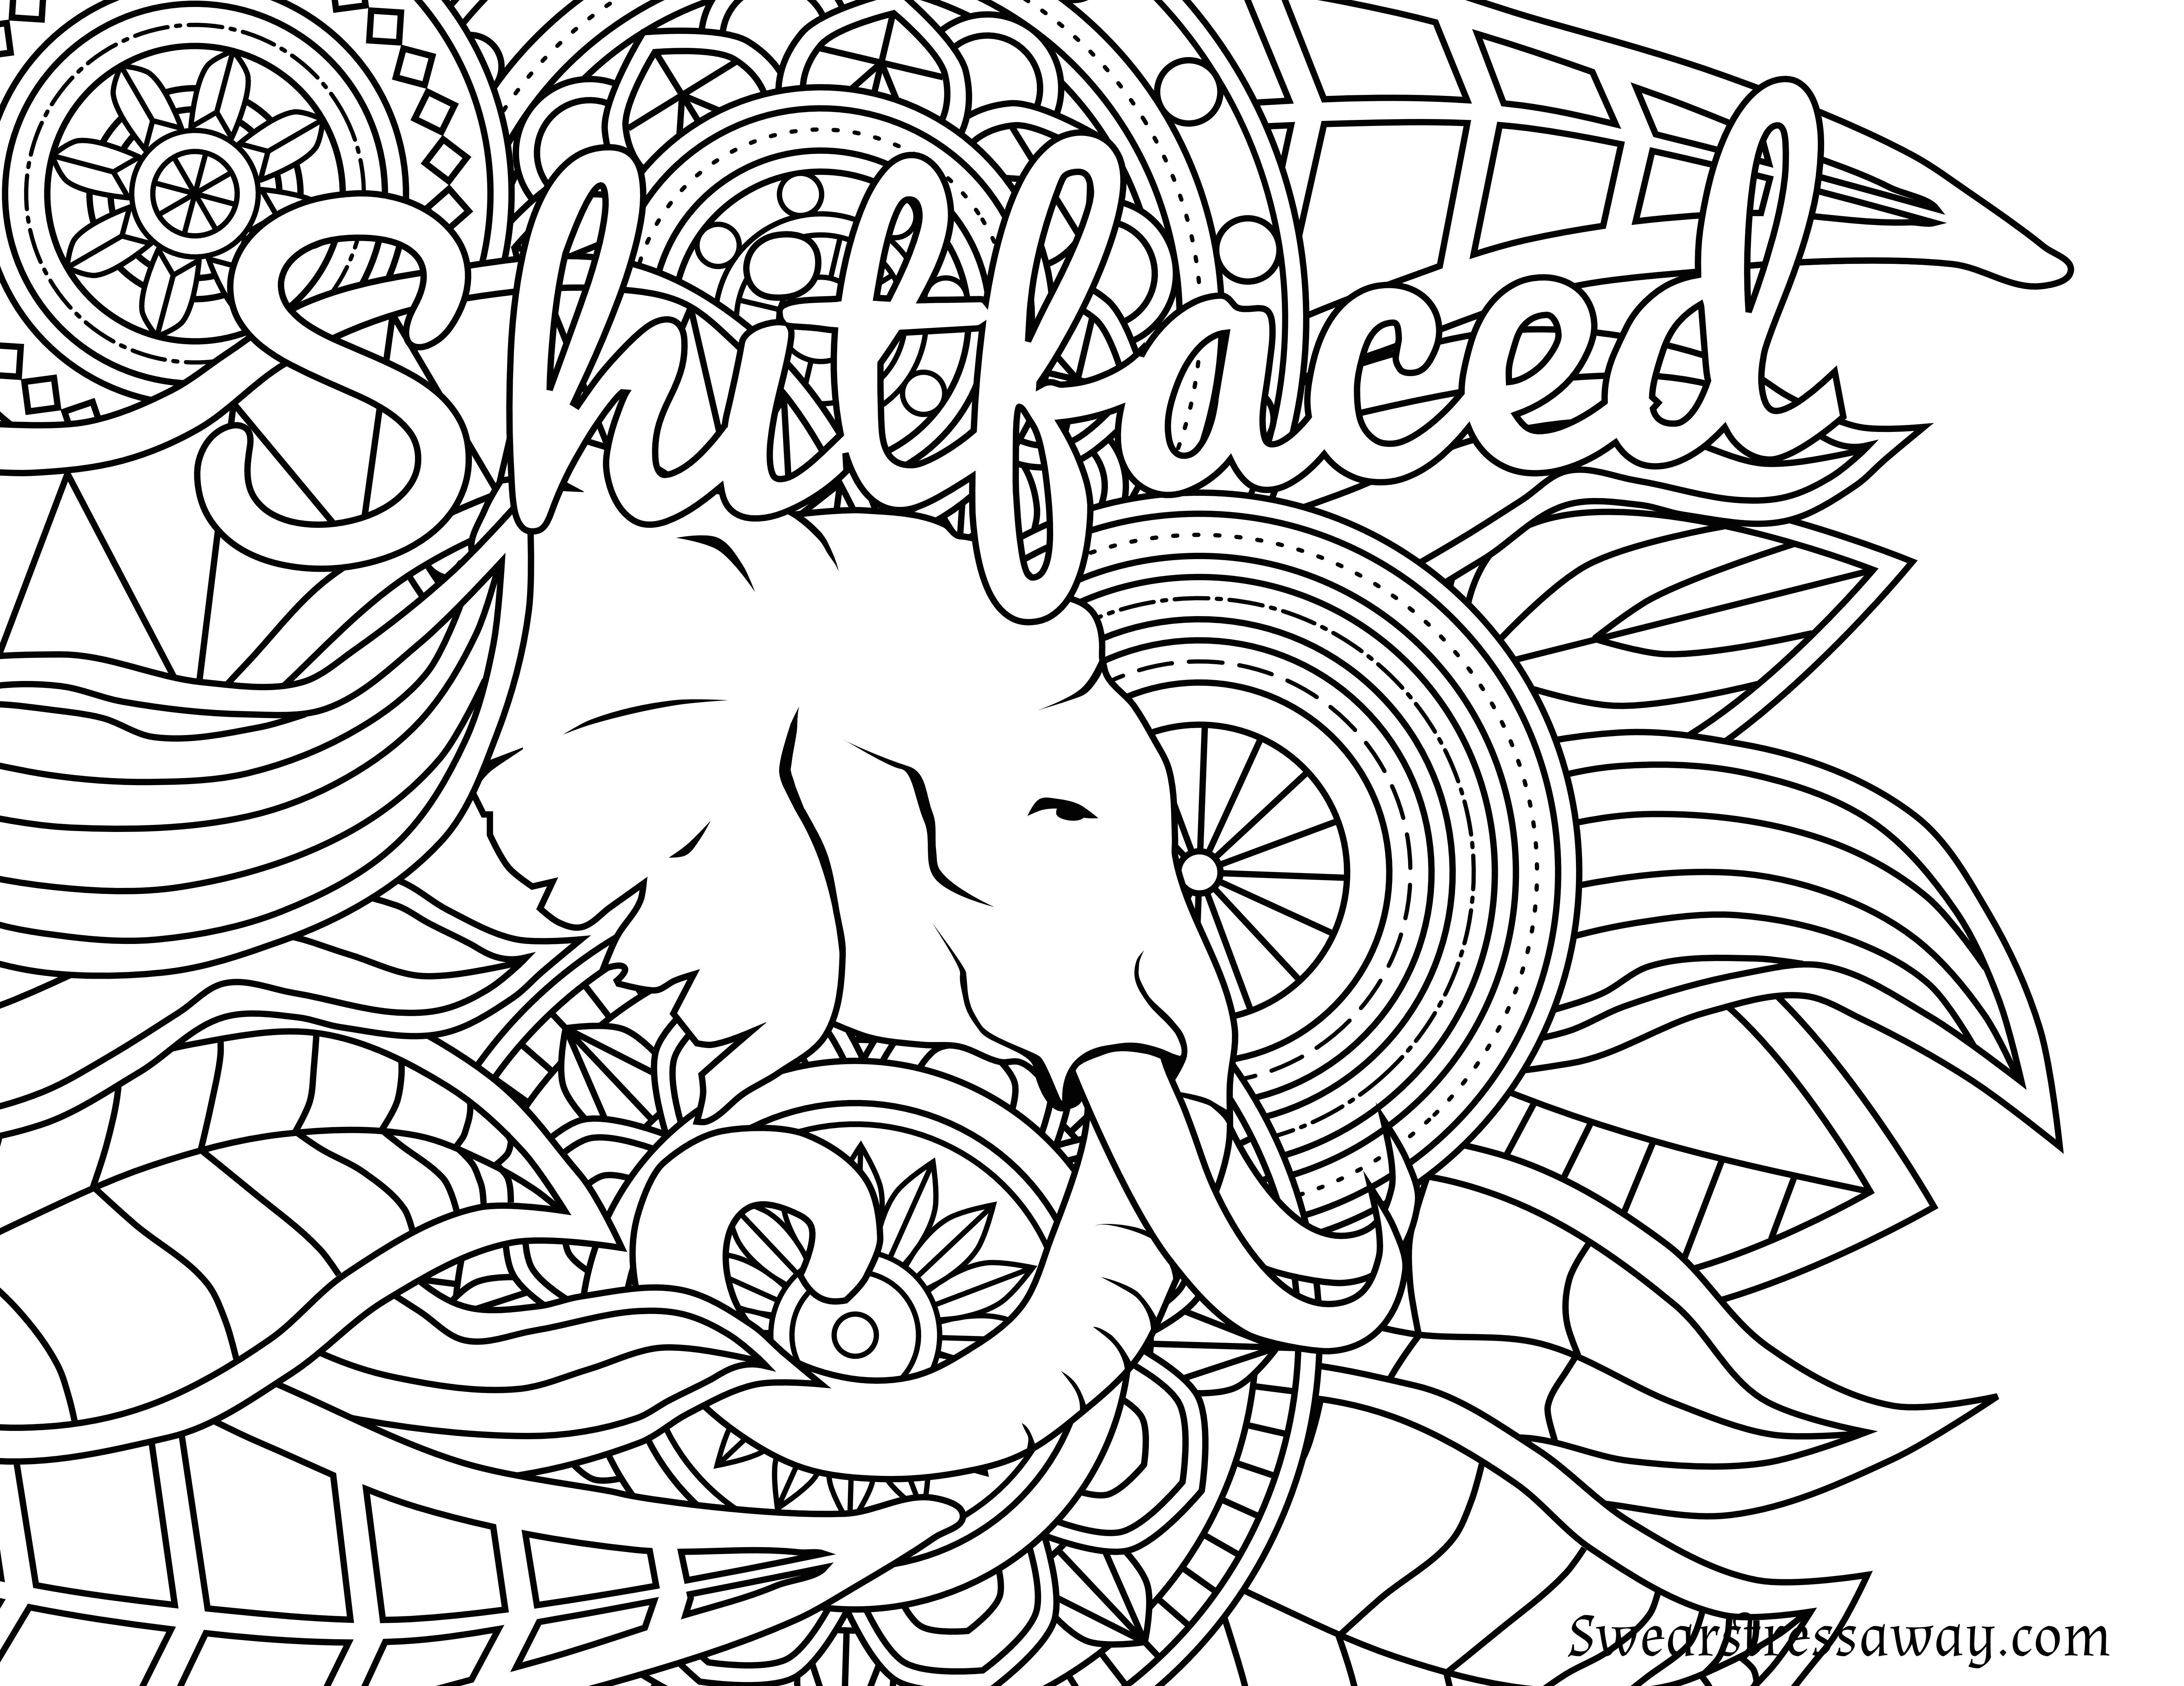 coloring pages for adults cuss words best 23 coloring pages for adults curse words home for words adults coloring pages cuss